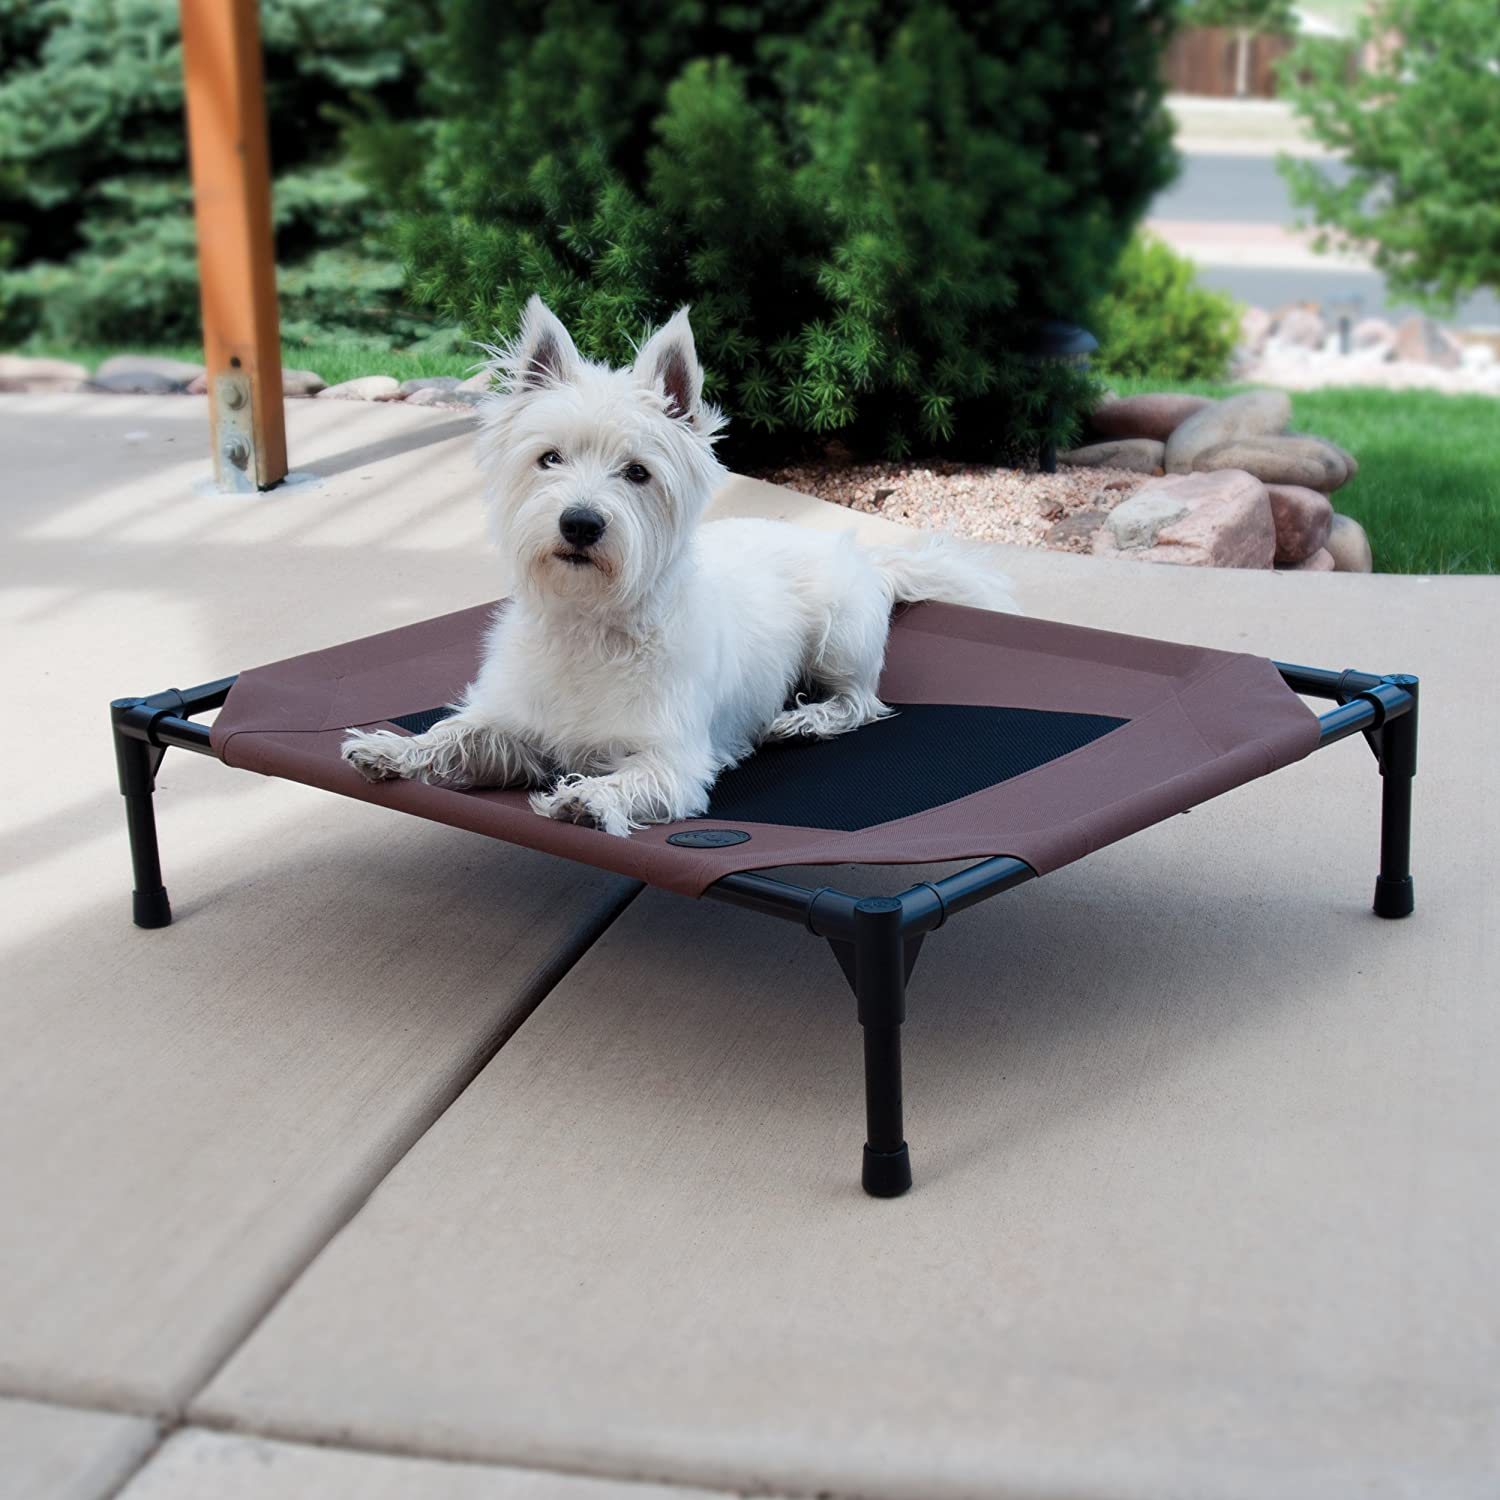 Top 10 Dog Beds And Furniture Products: Ease Of Use, Comfort & Convenience 24